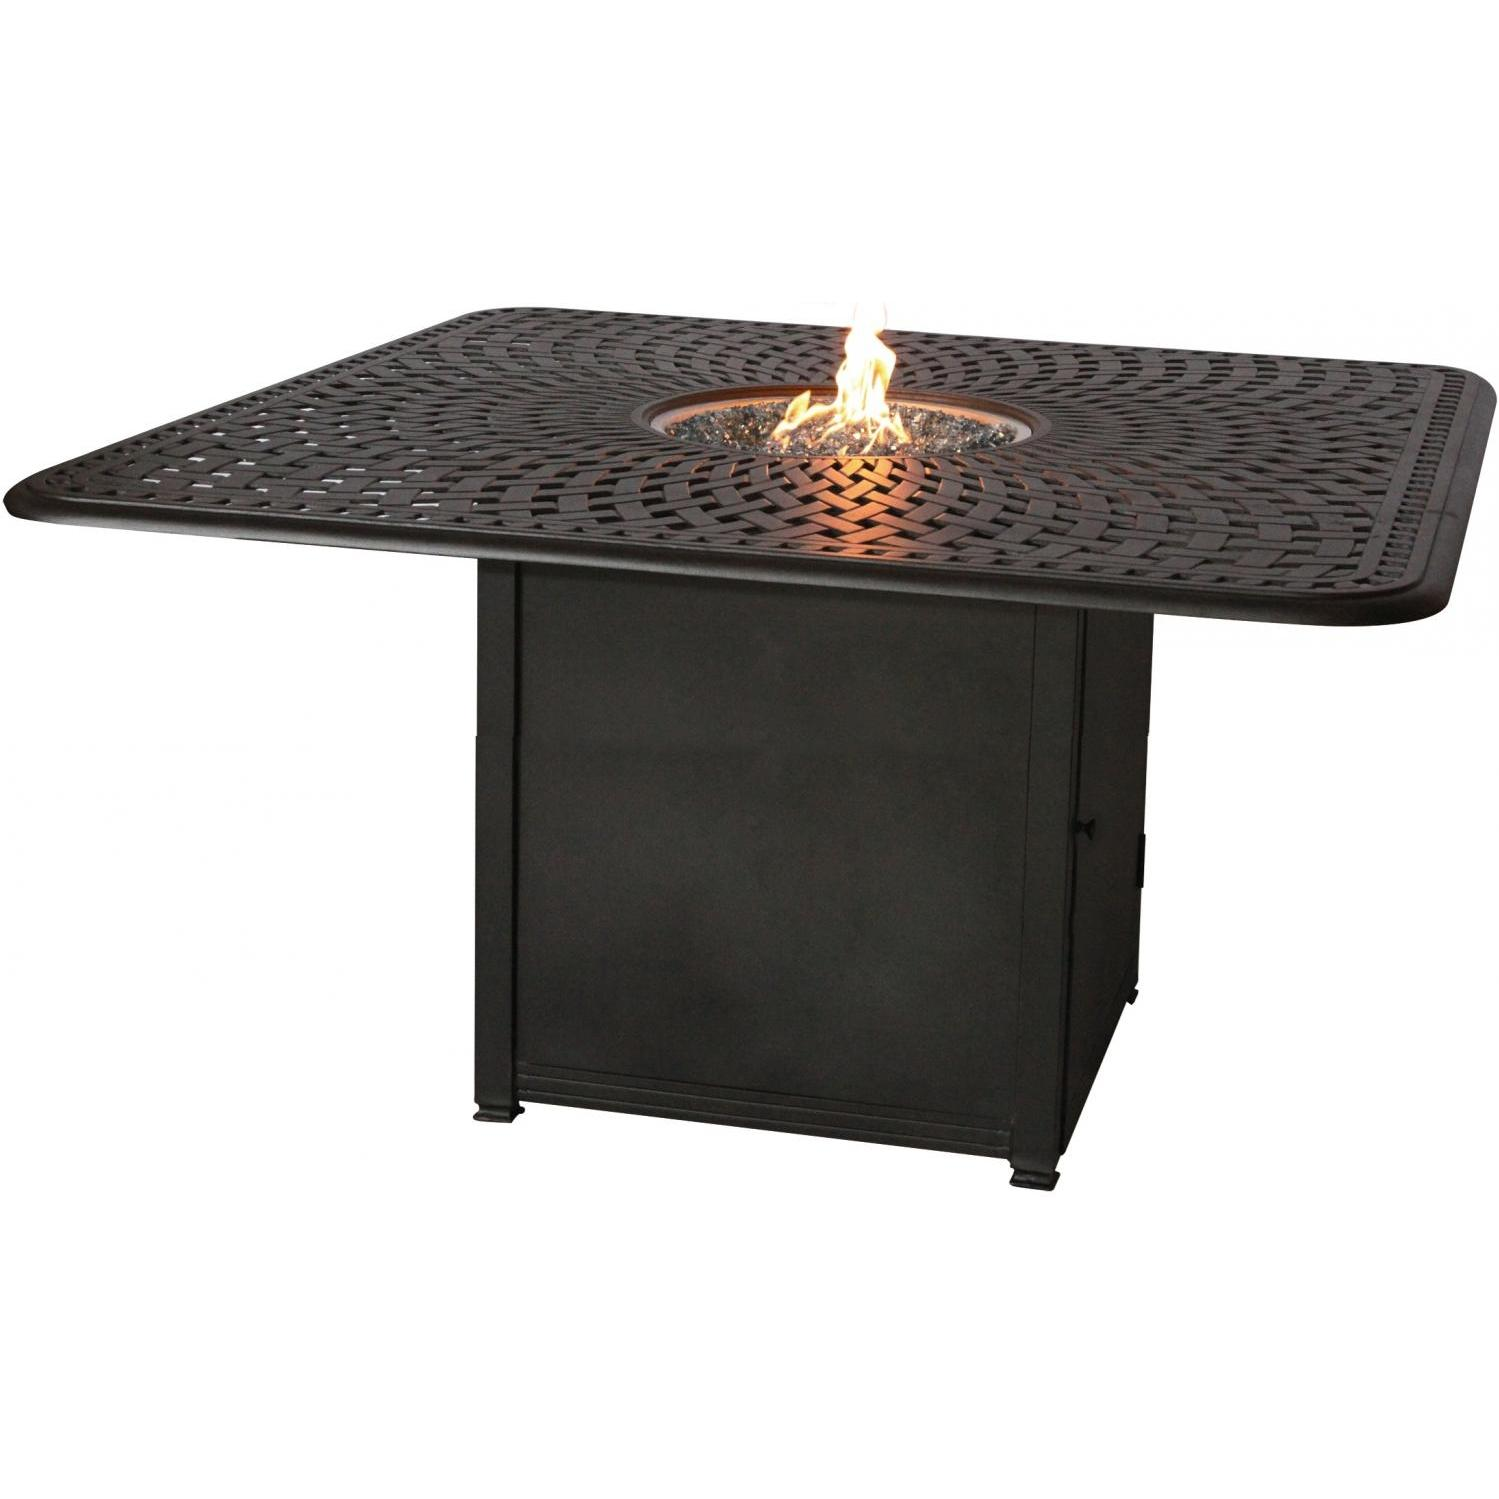 Darlee Counter Height Propane Fire Pit Dining Table - Antique Bronze at Sears.com